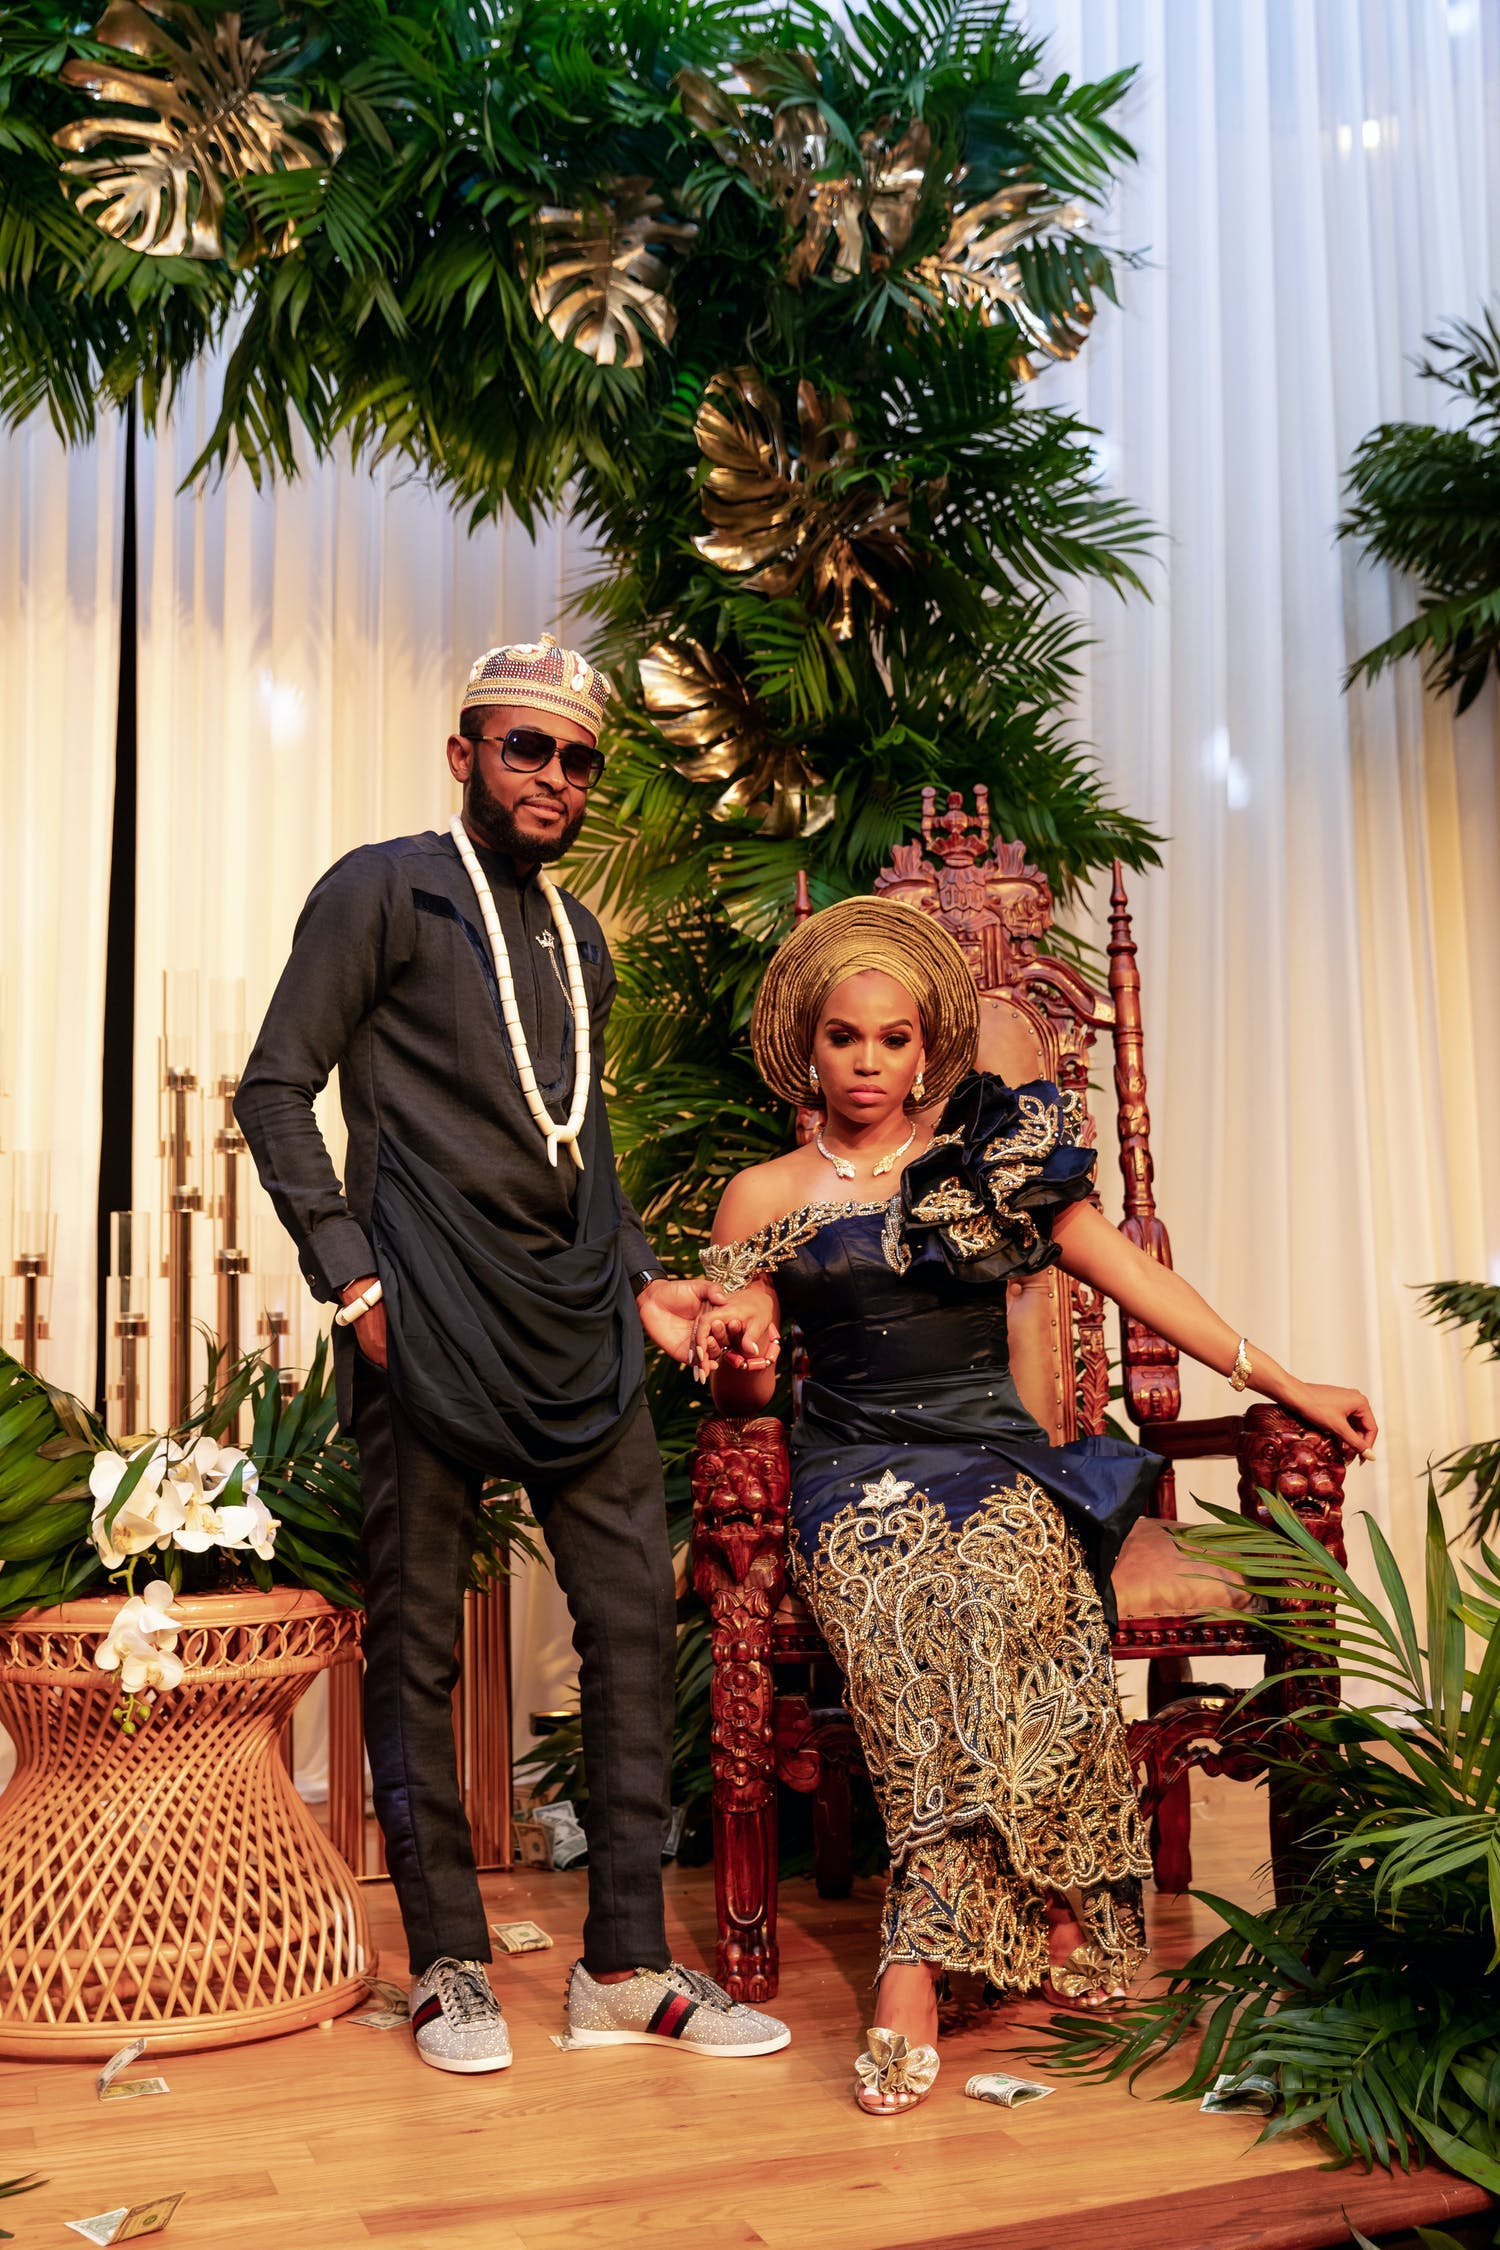 Bride and Groom pose in front of tropical foliage at Nigerian Wedding | PartySlate